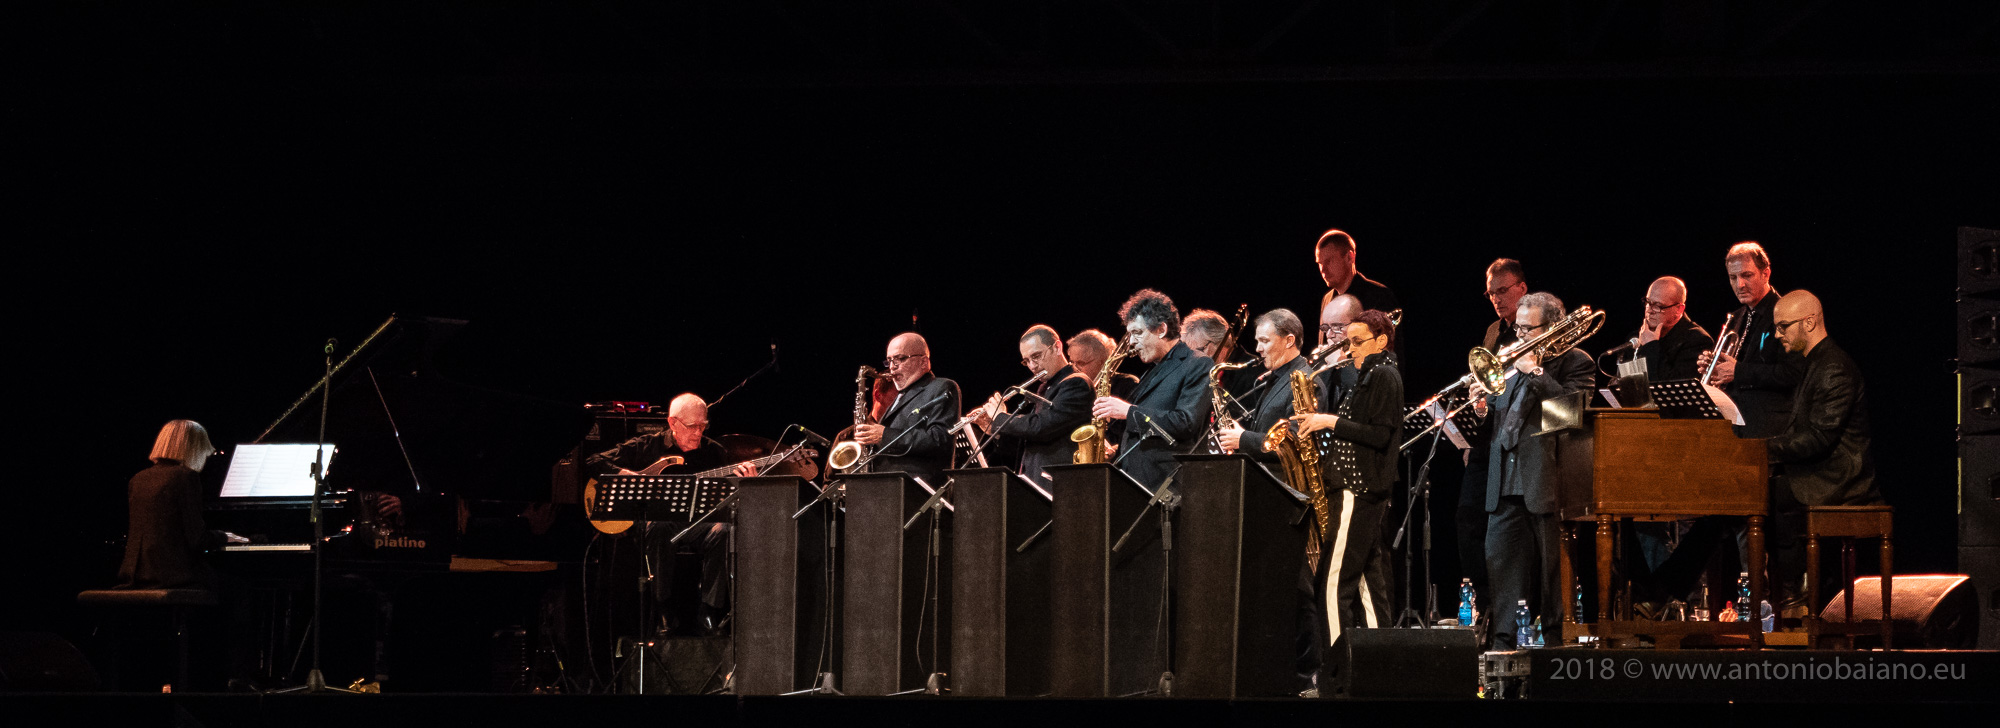 Carla Bley and the Torino Jazz Orchestra - TJF 2018